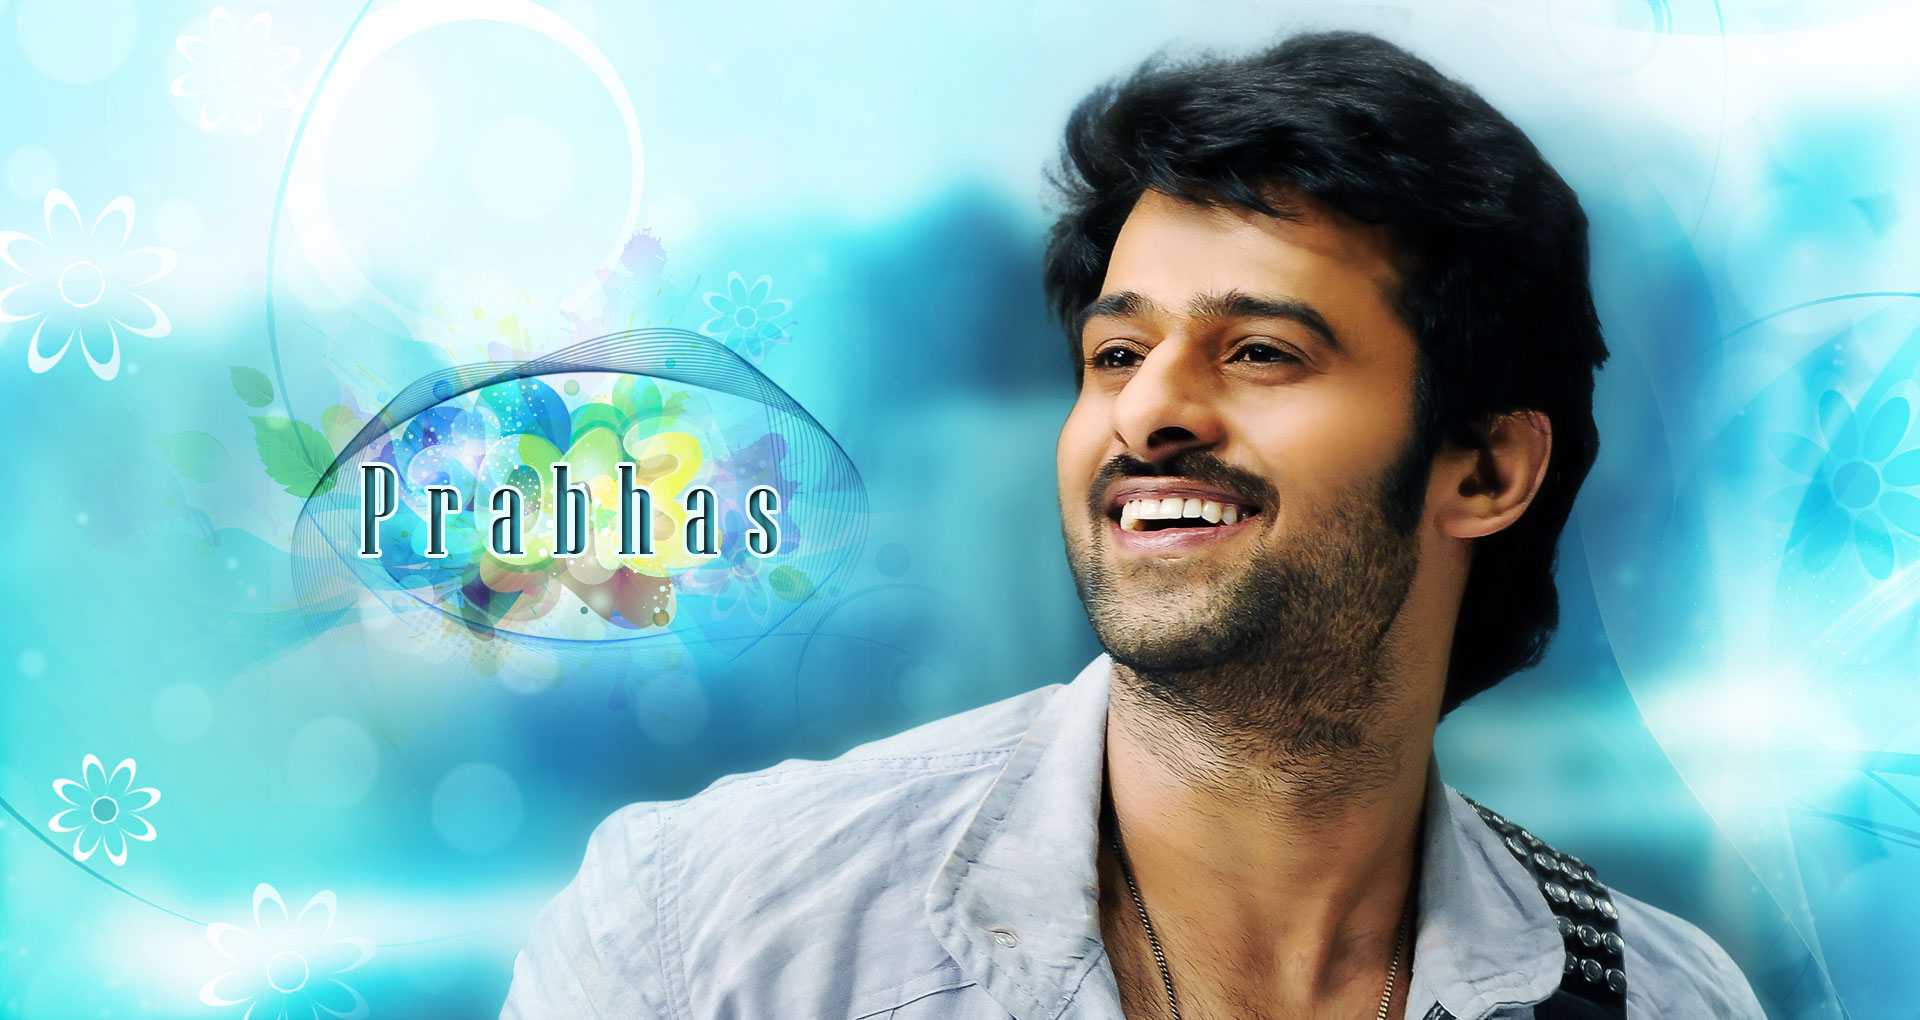 prabhas raju hd wallpaper download | prabhas lastest photos for download